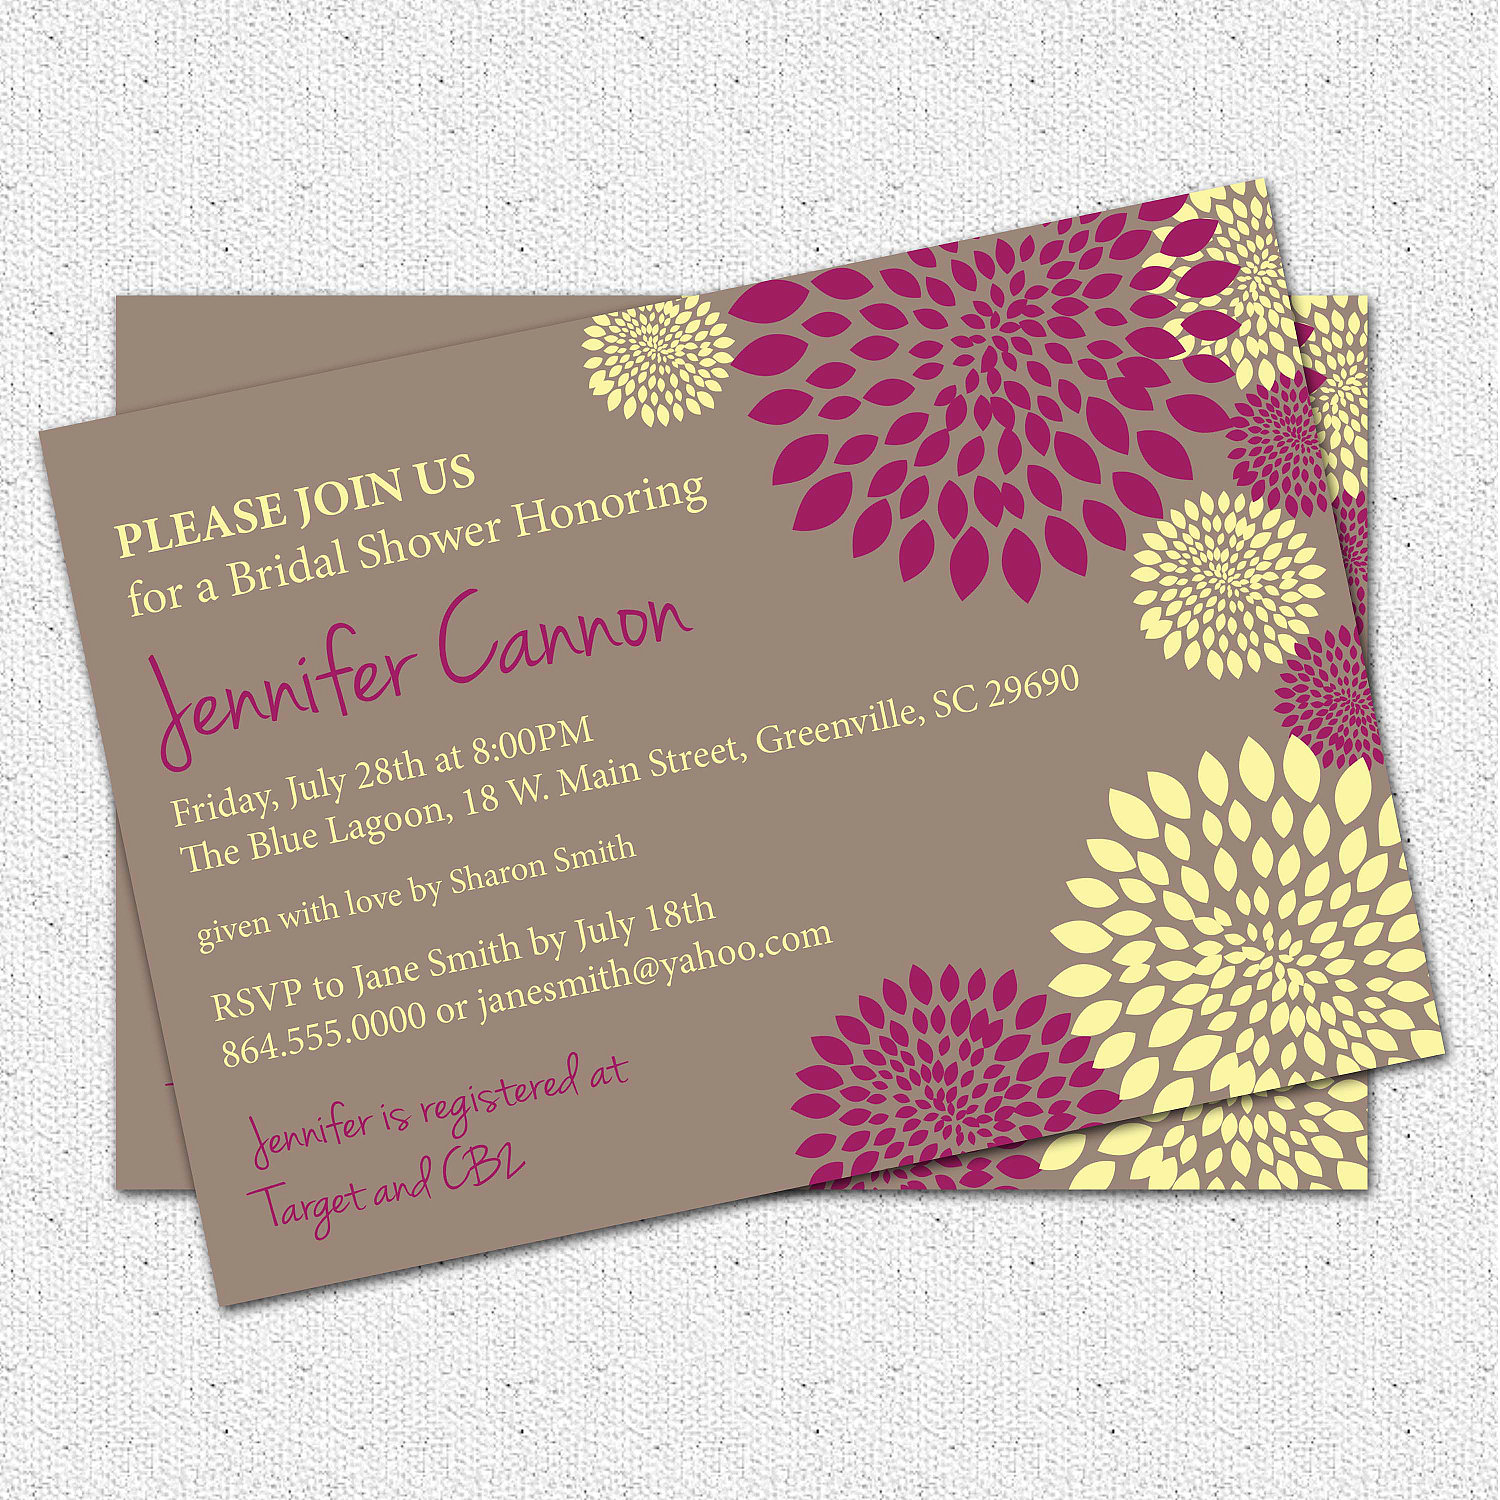 Bridal shower or baby shower invitations floral you pick colors bridal shower or baby shower invitations floral you pick colors custom modern filmwisefo